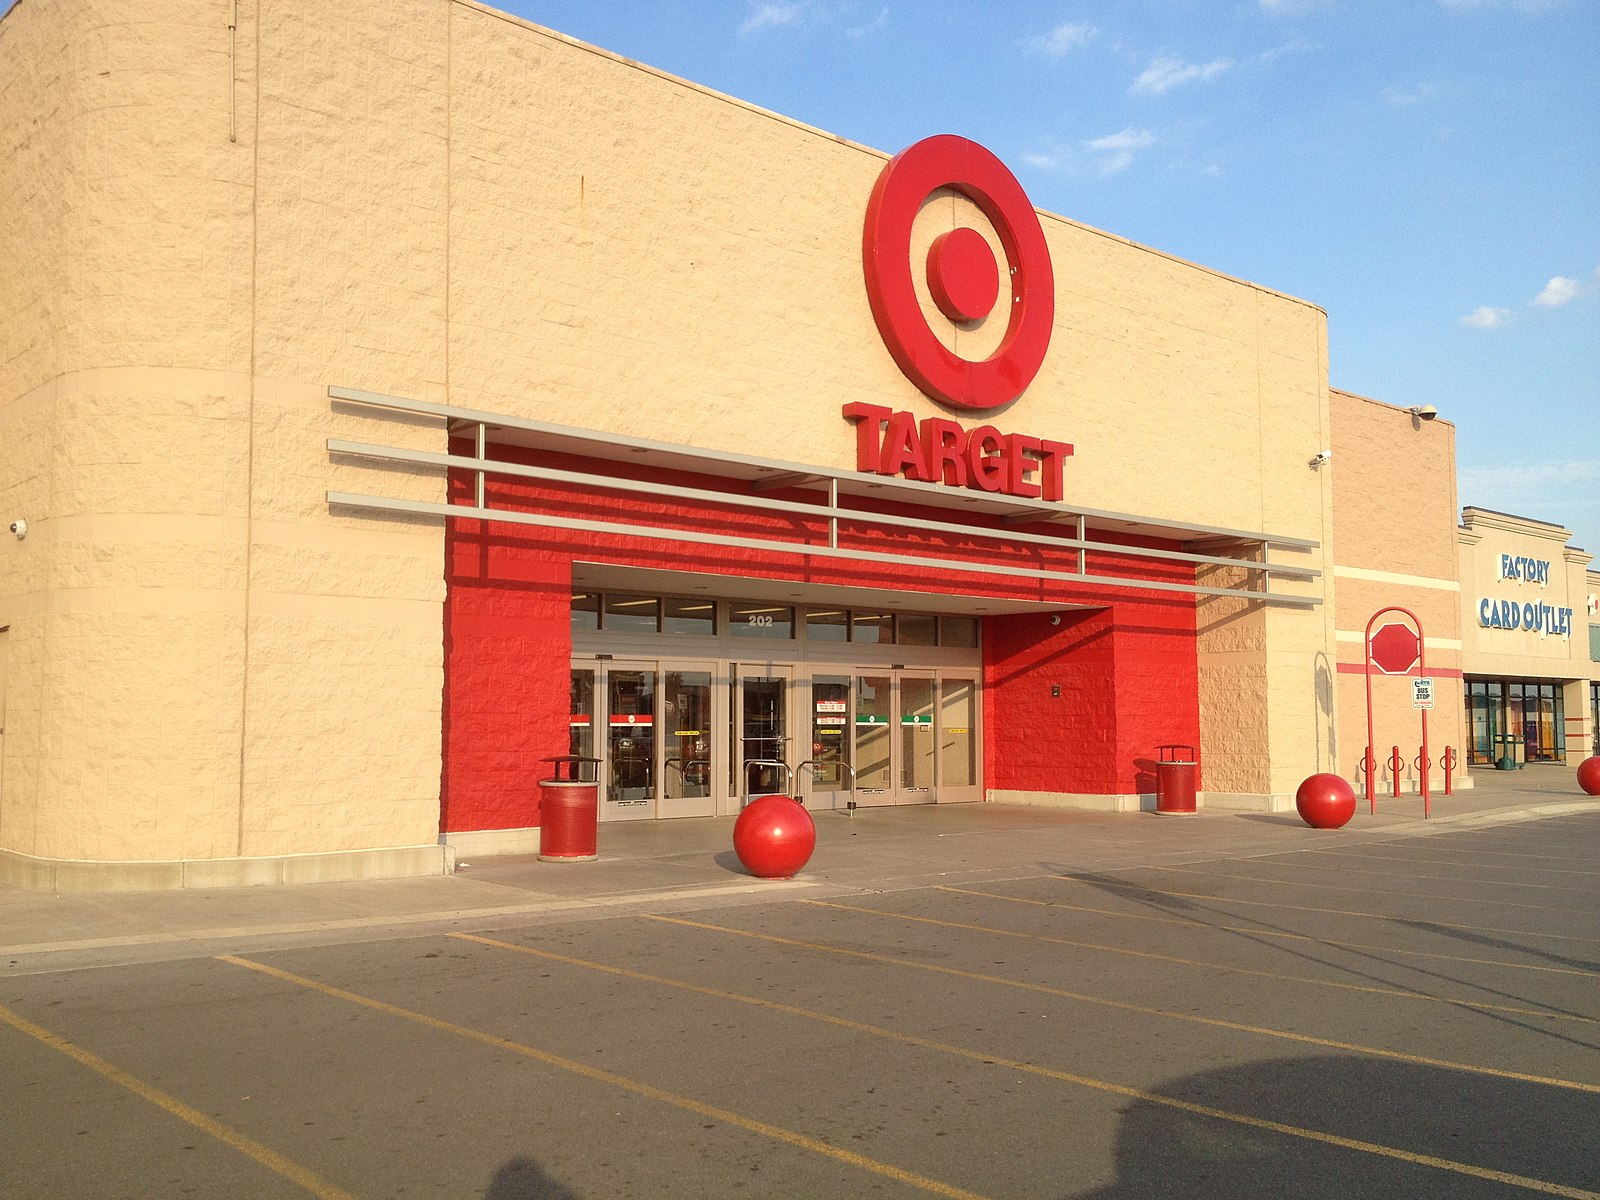 How to apply at target, the exterior of a Target retail store.